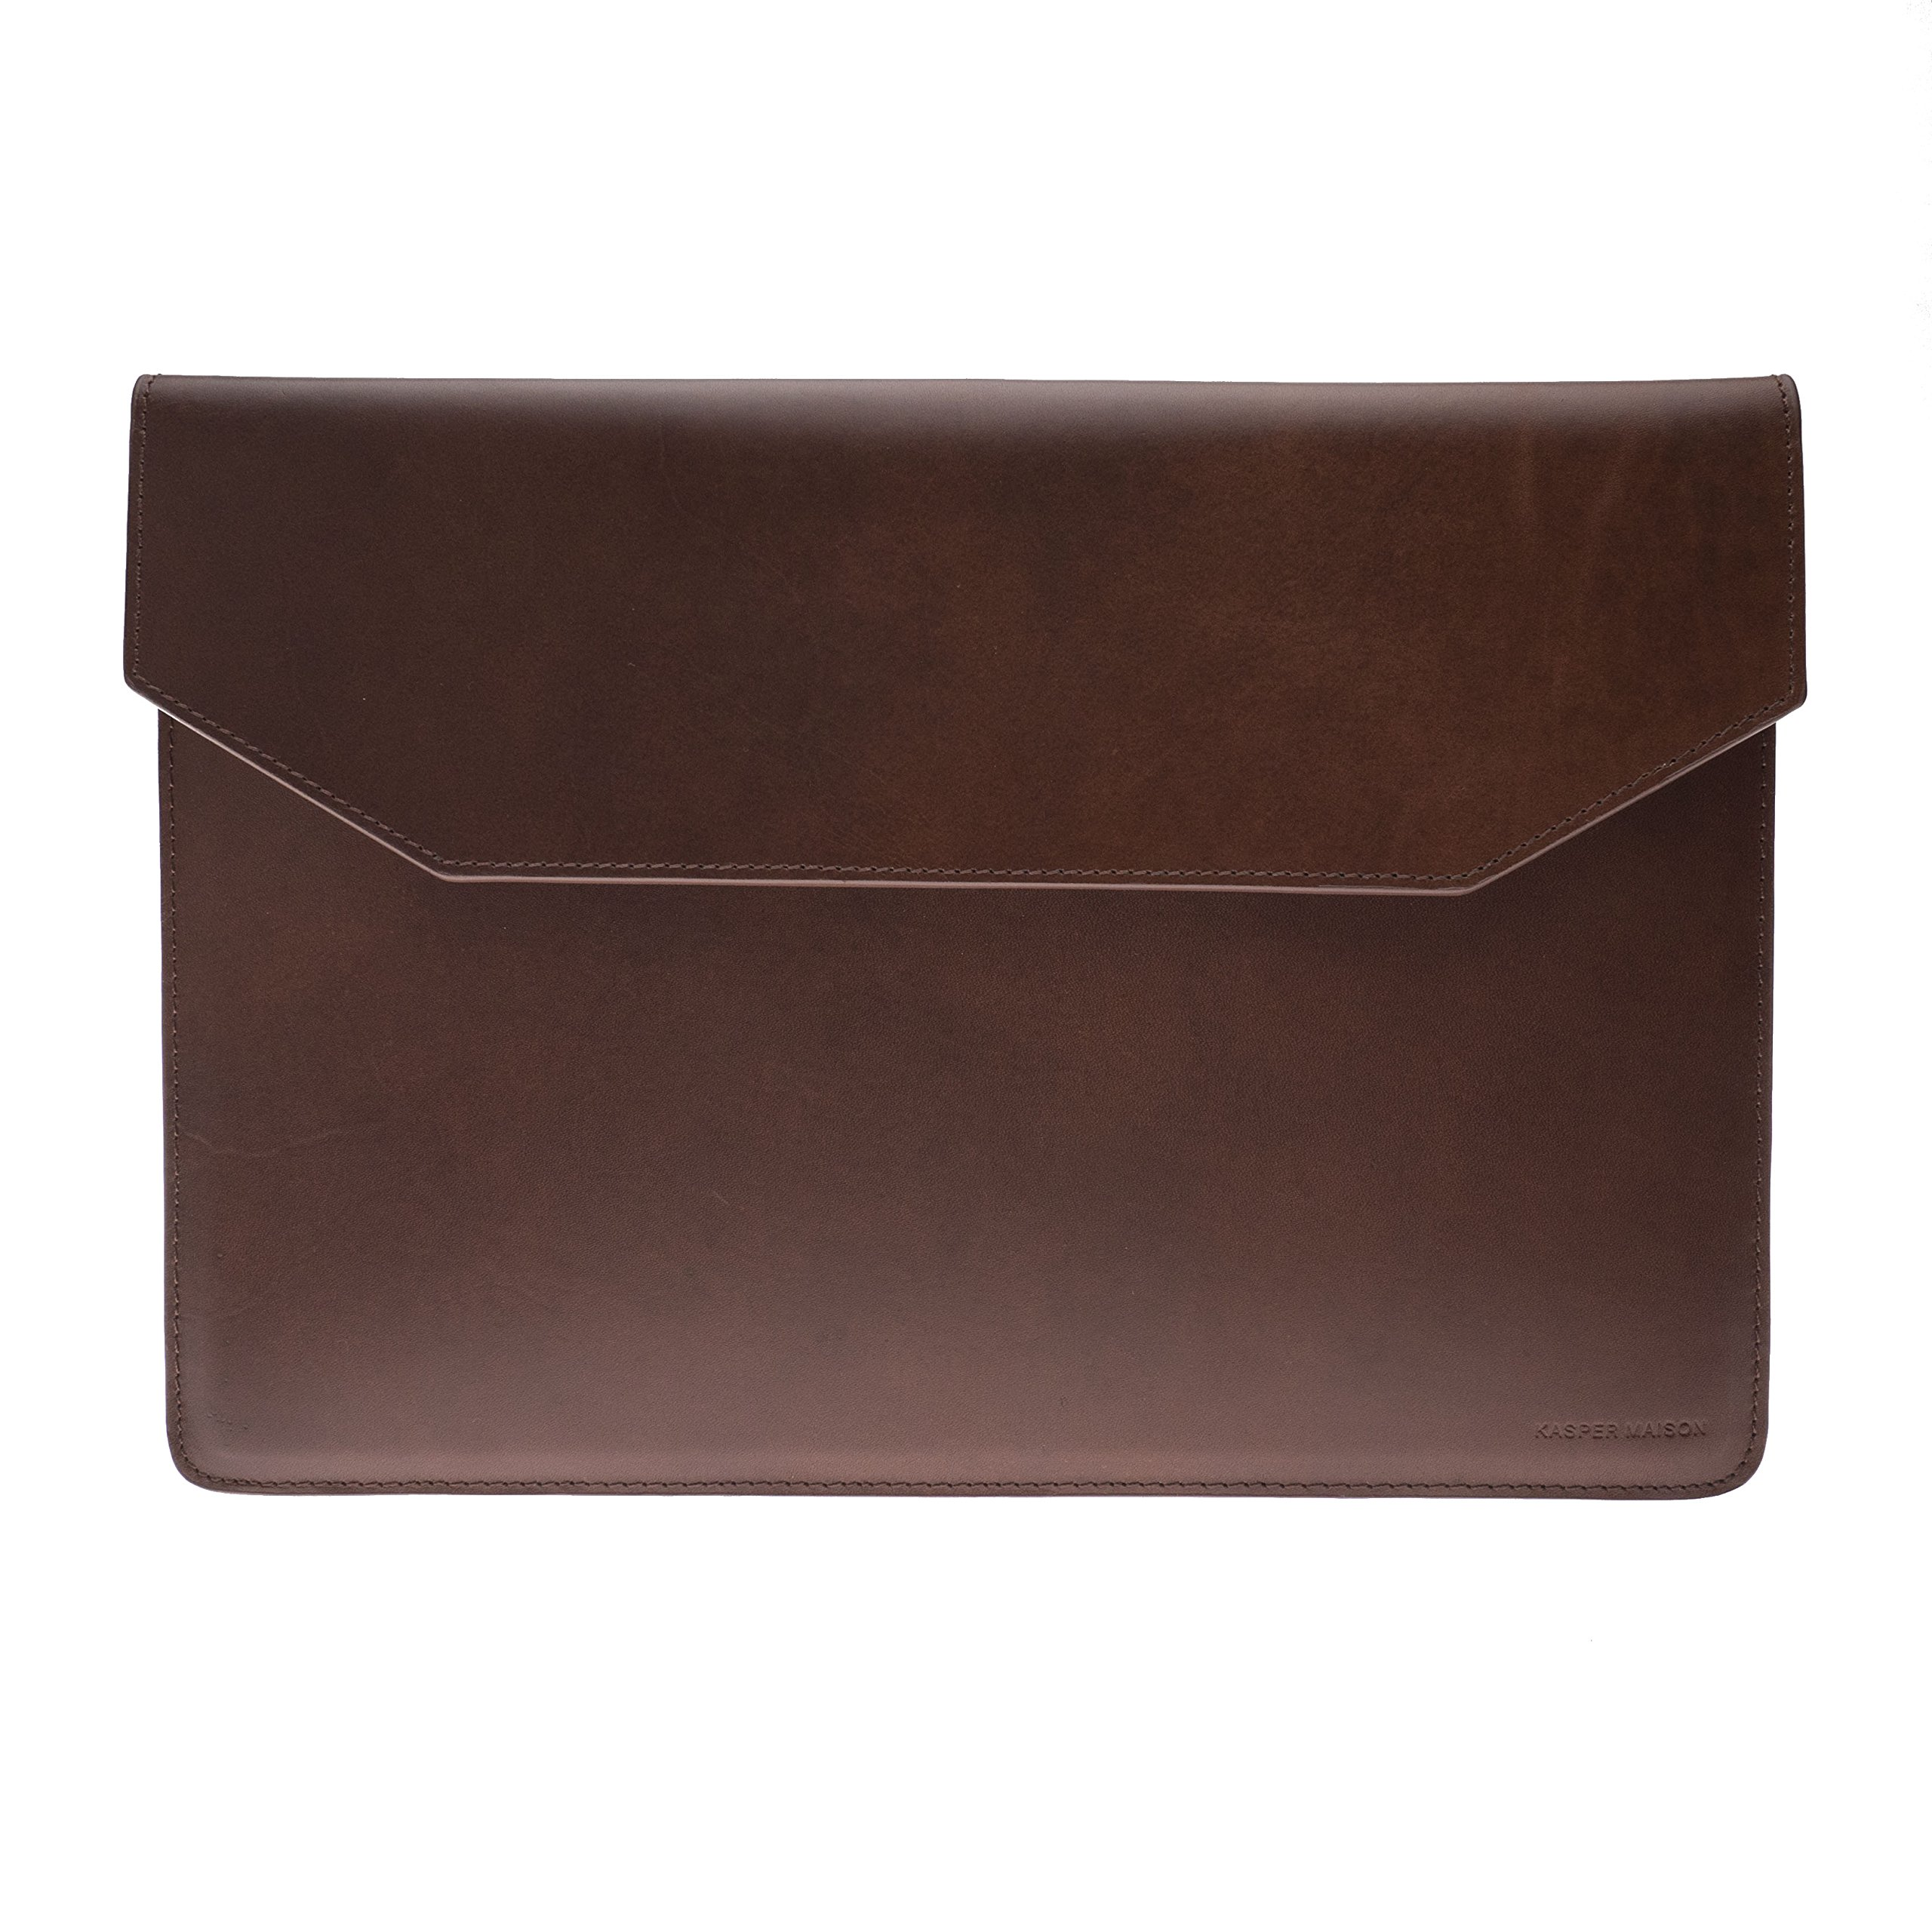 Kasper Maison Italian Leather Laptop Sleeve for 15 Inch Macbook Pro 2016 / 2017 Touch Bar – Designed Envelope Case for similar computer, notebook and ultrabook sizes - Signature Gift Included by Kasper Maison (Image #4)